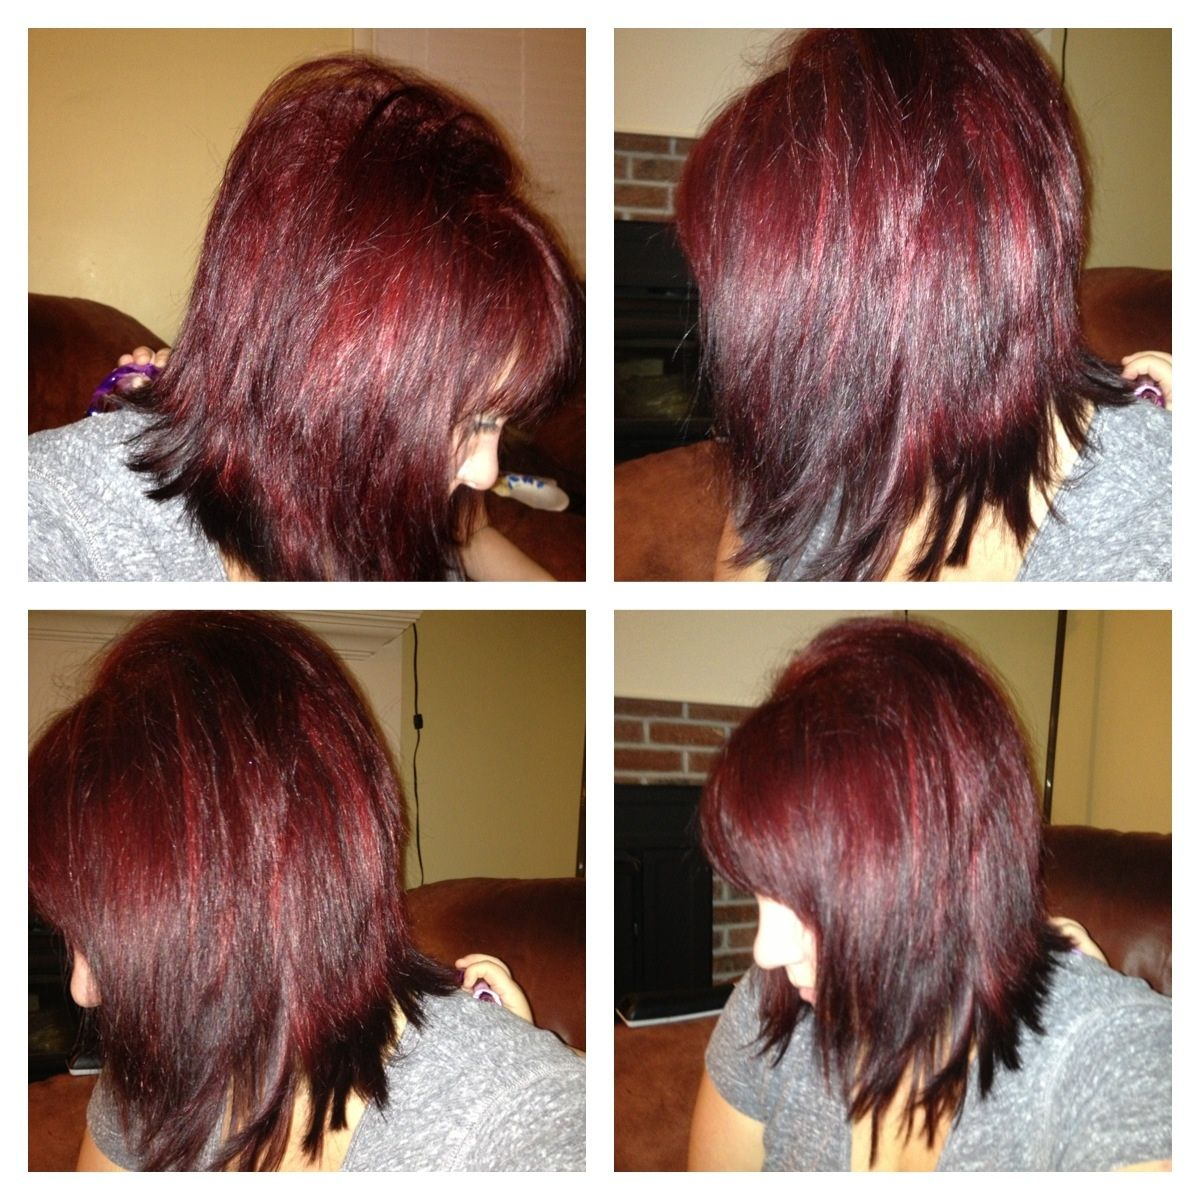 My hair used loreal hicolor highlight in red i did it twice to used loreal hicolor highlight in red i did it twice solutioingenieria Image collections